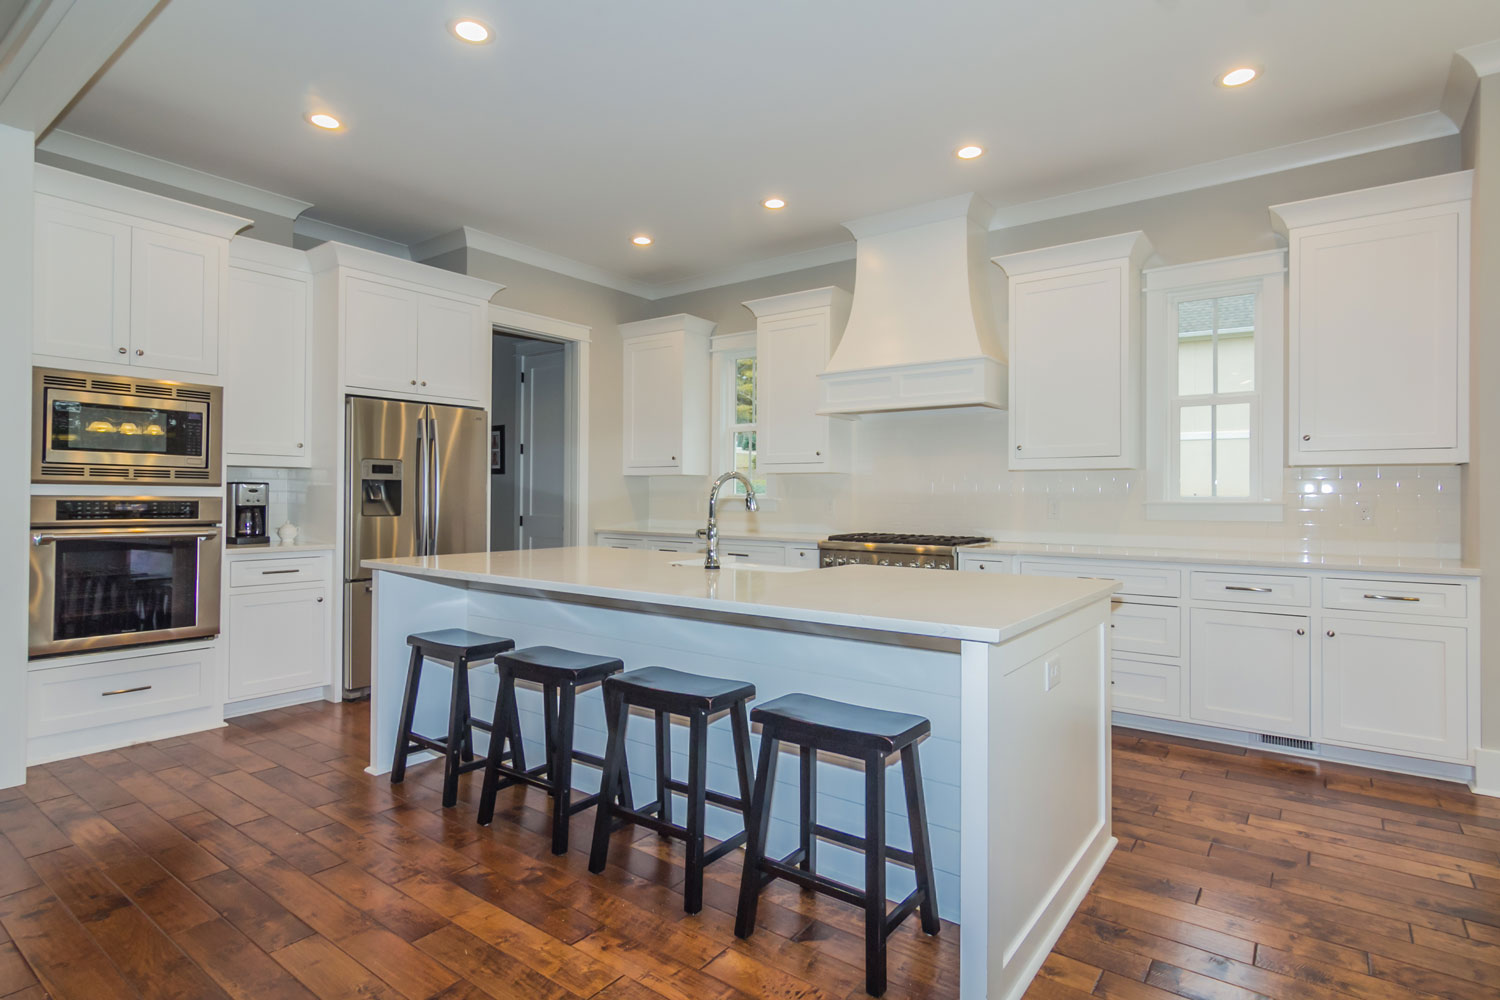 911-Seabrook-Court-kitchen.jpg